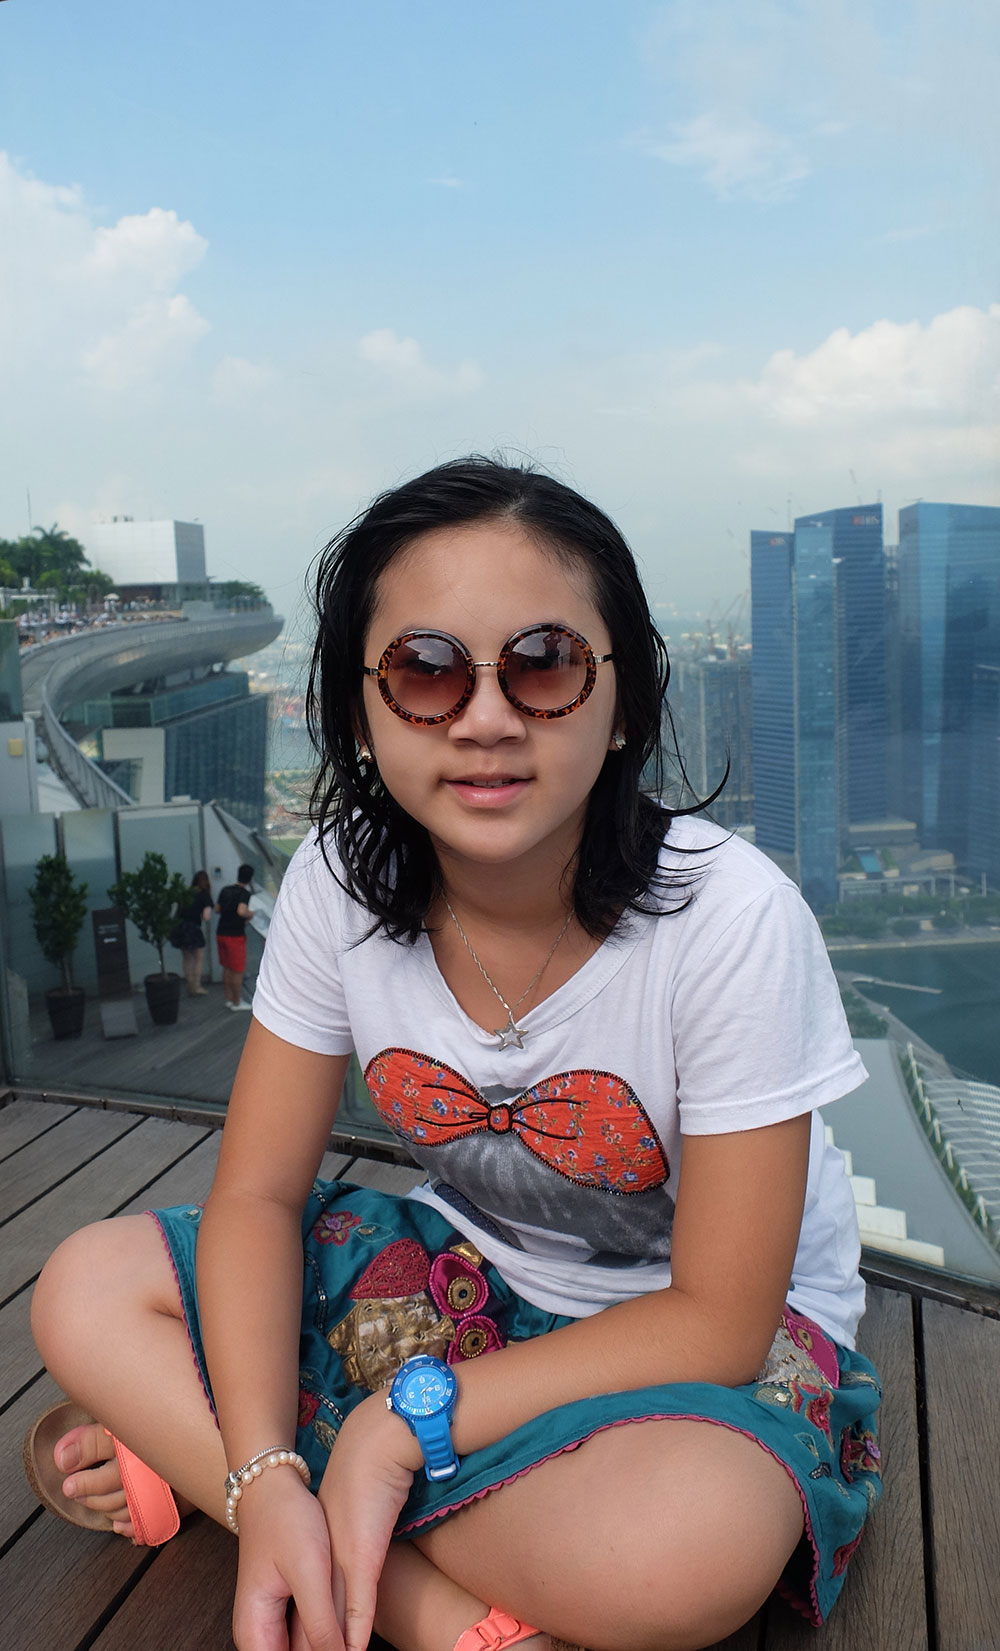 Marina-bay-sands-102